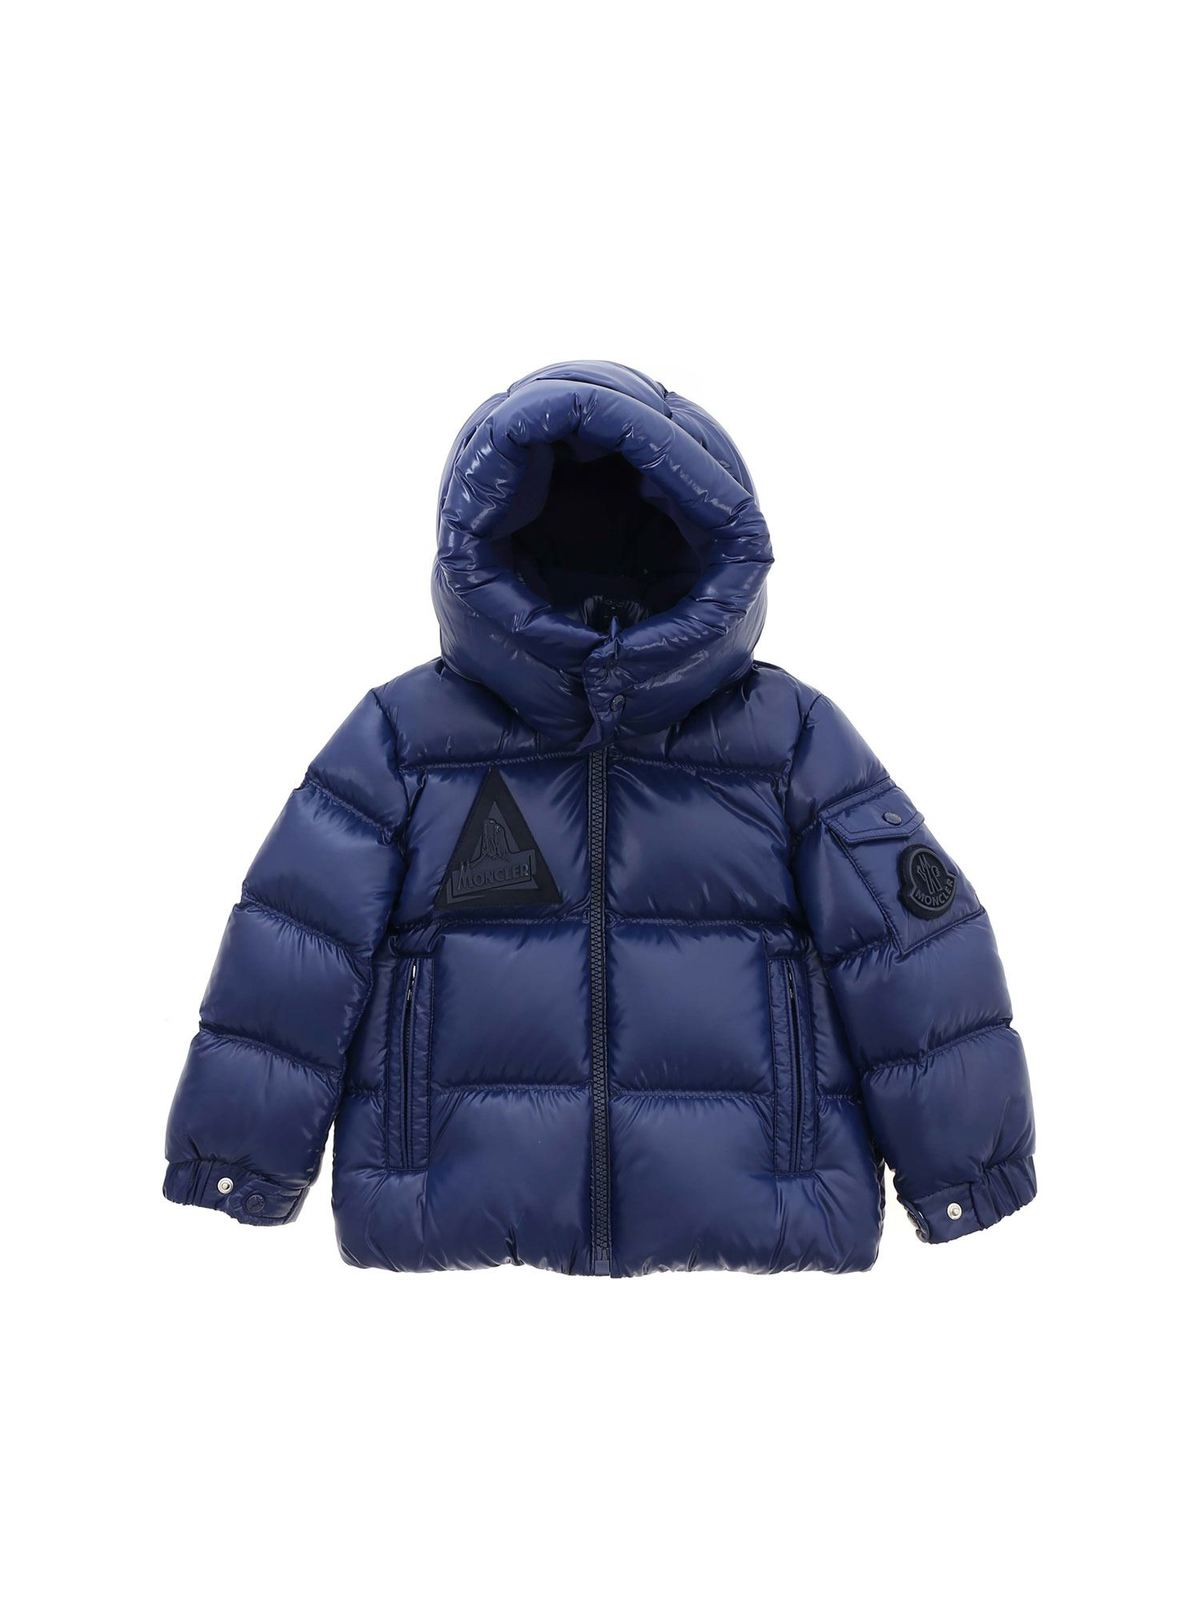 MONCLER JR ECRINS DOWN JACKET IN BLUE